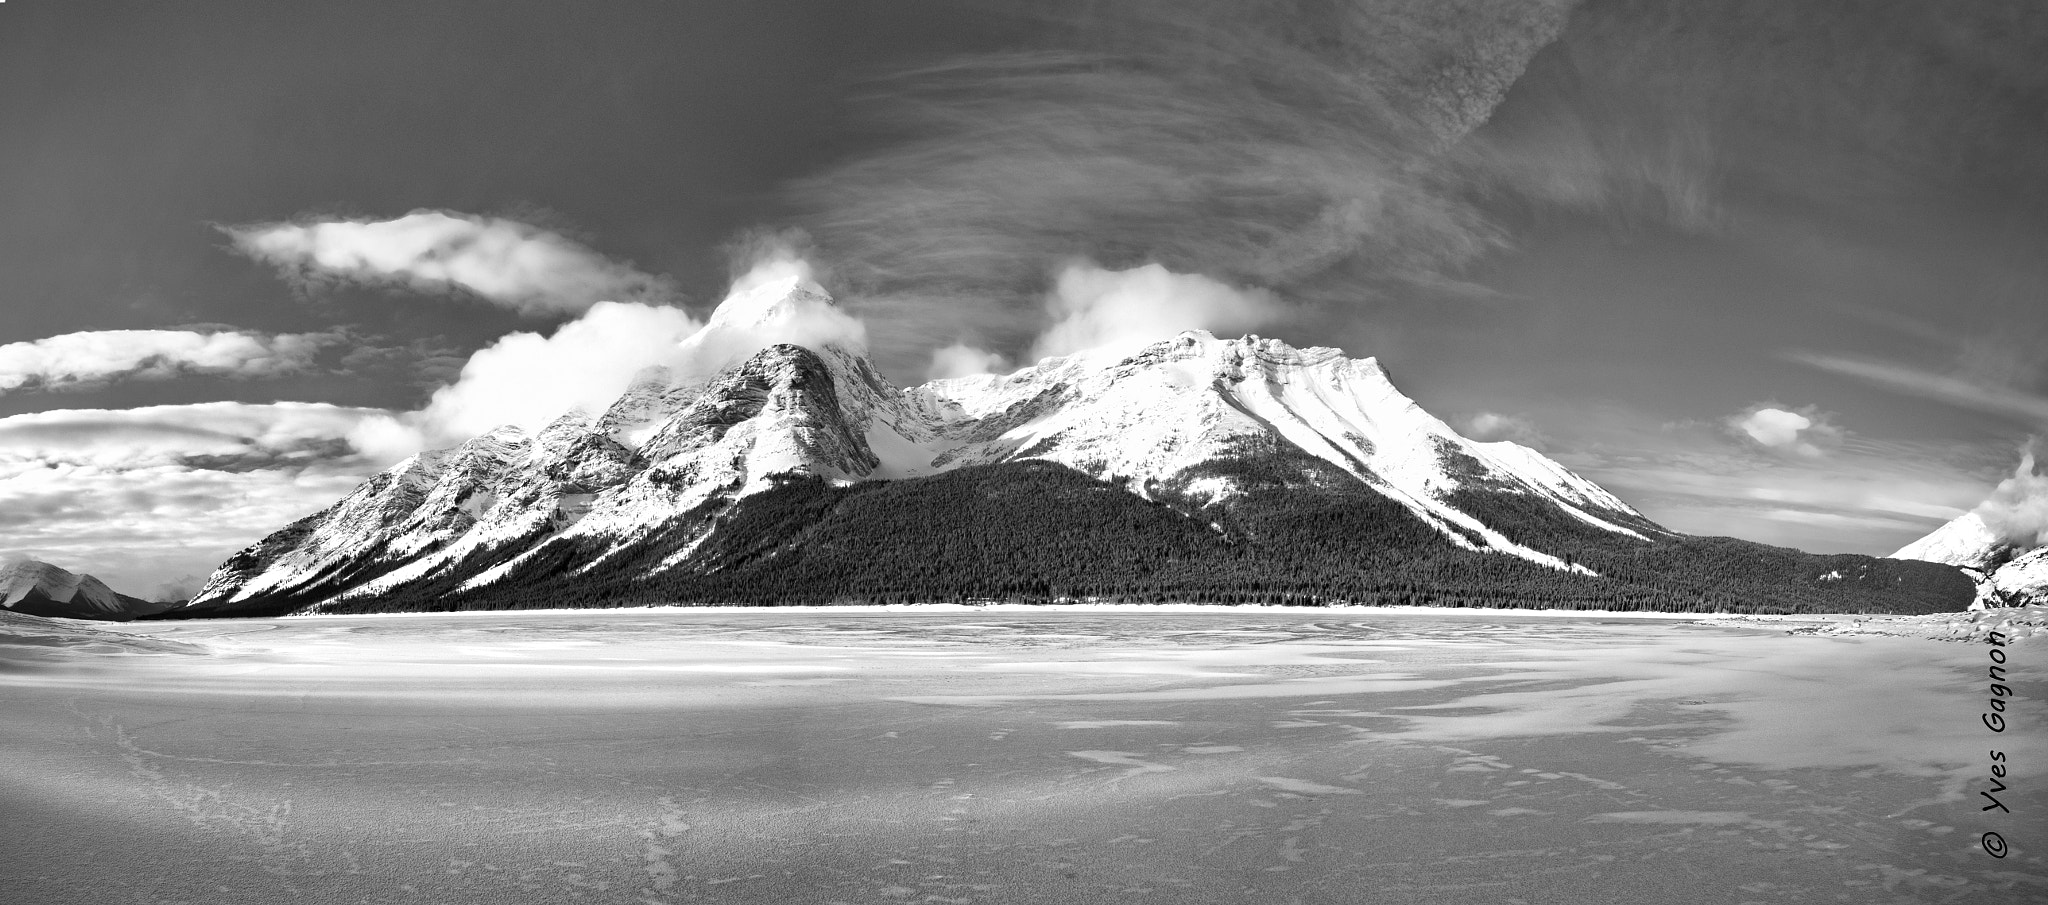 Photograph Panorama of the Rockies  by Yves Gagnon on 500px